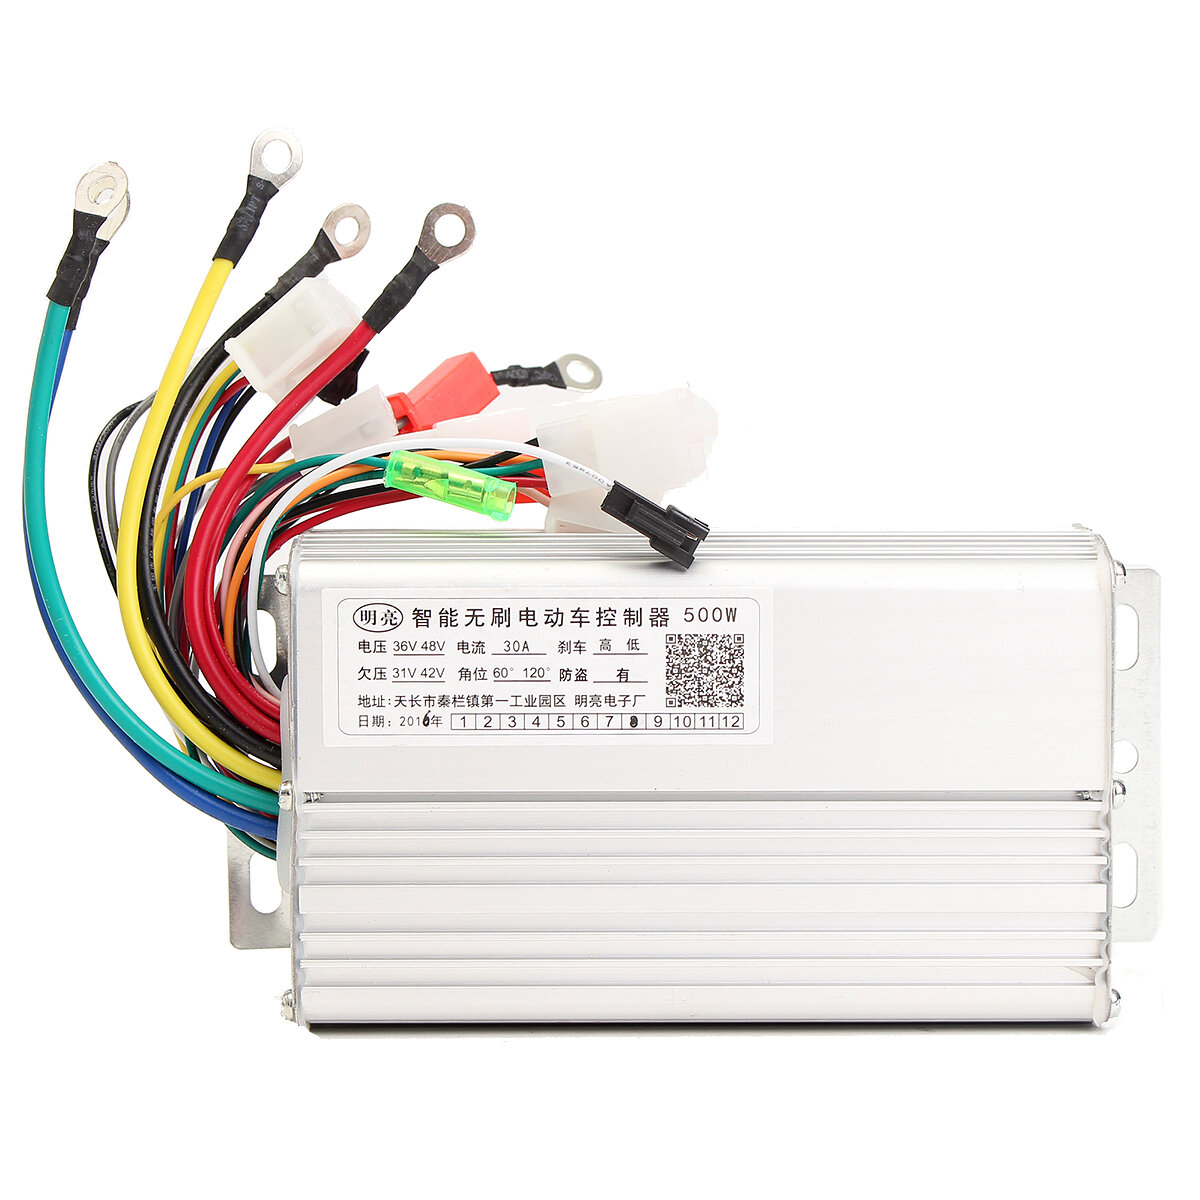 48V 500W 30A Brushless Motor Controller for Electric Scooters Bike  Volt Electric Scooter Controller Wiring Diagram on